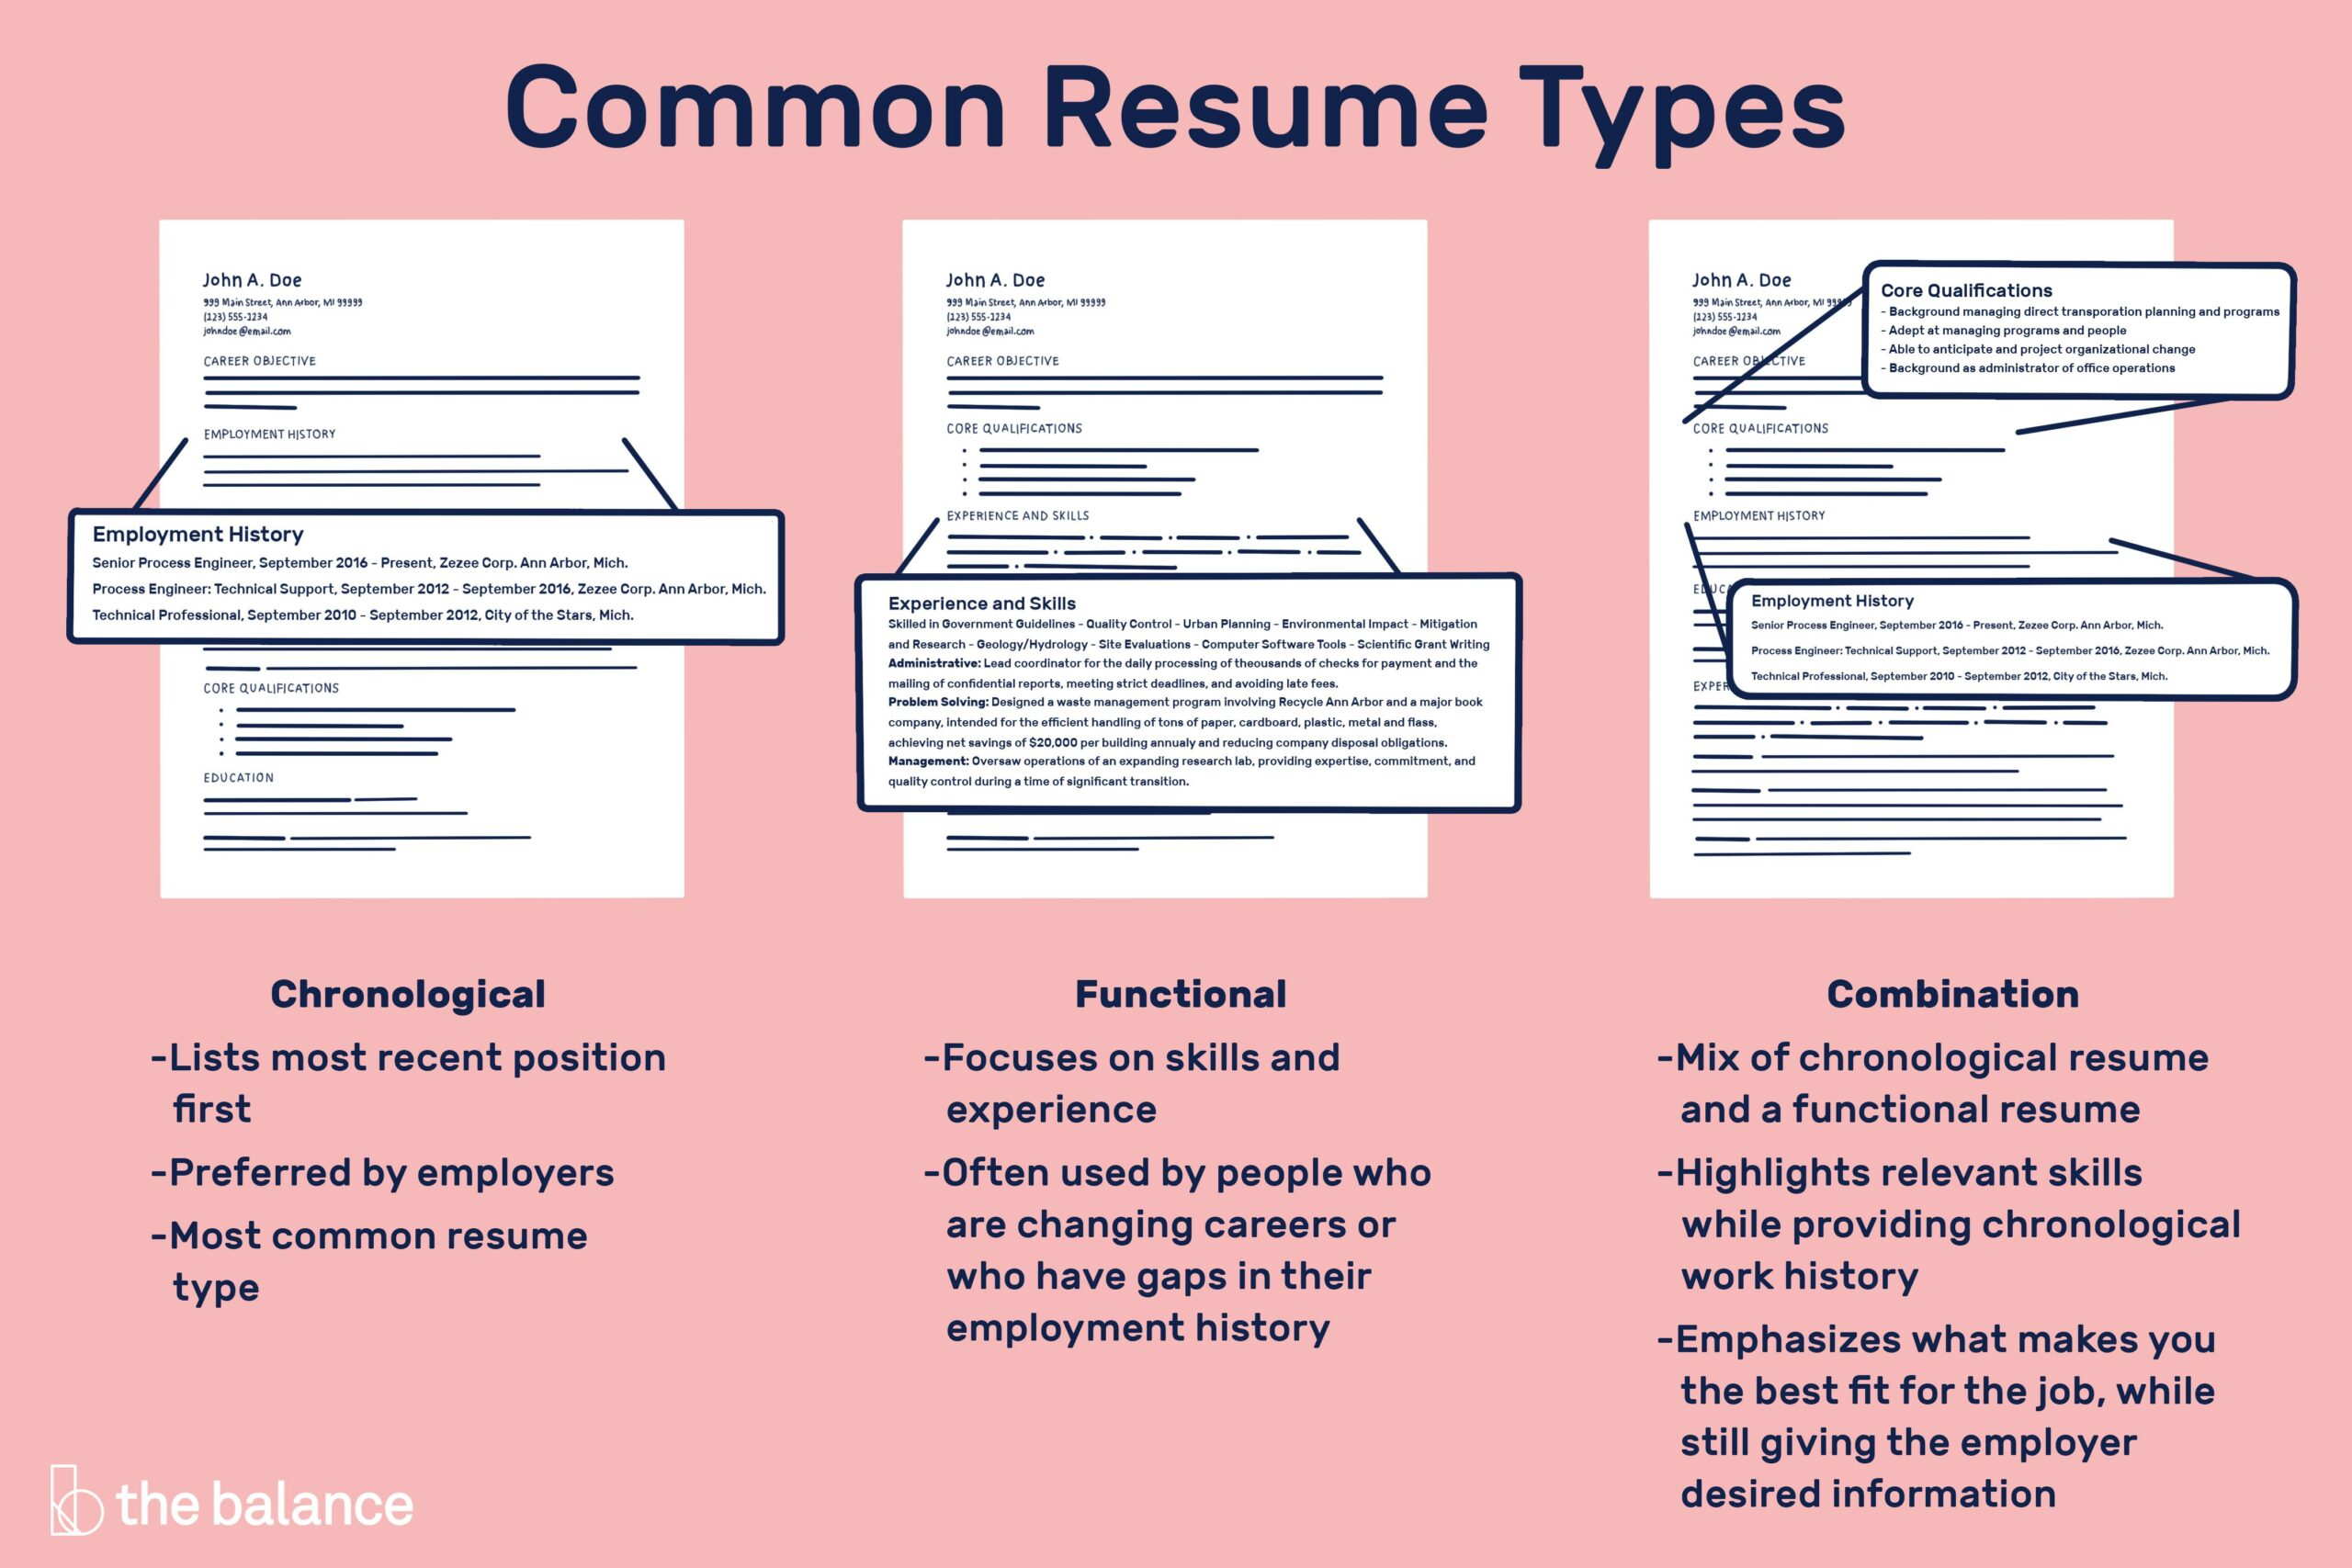 different resume types resumes for employers chronological functional combination Resume Online Resumes For Employers